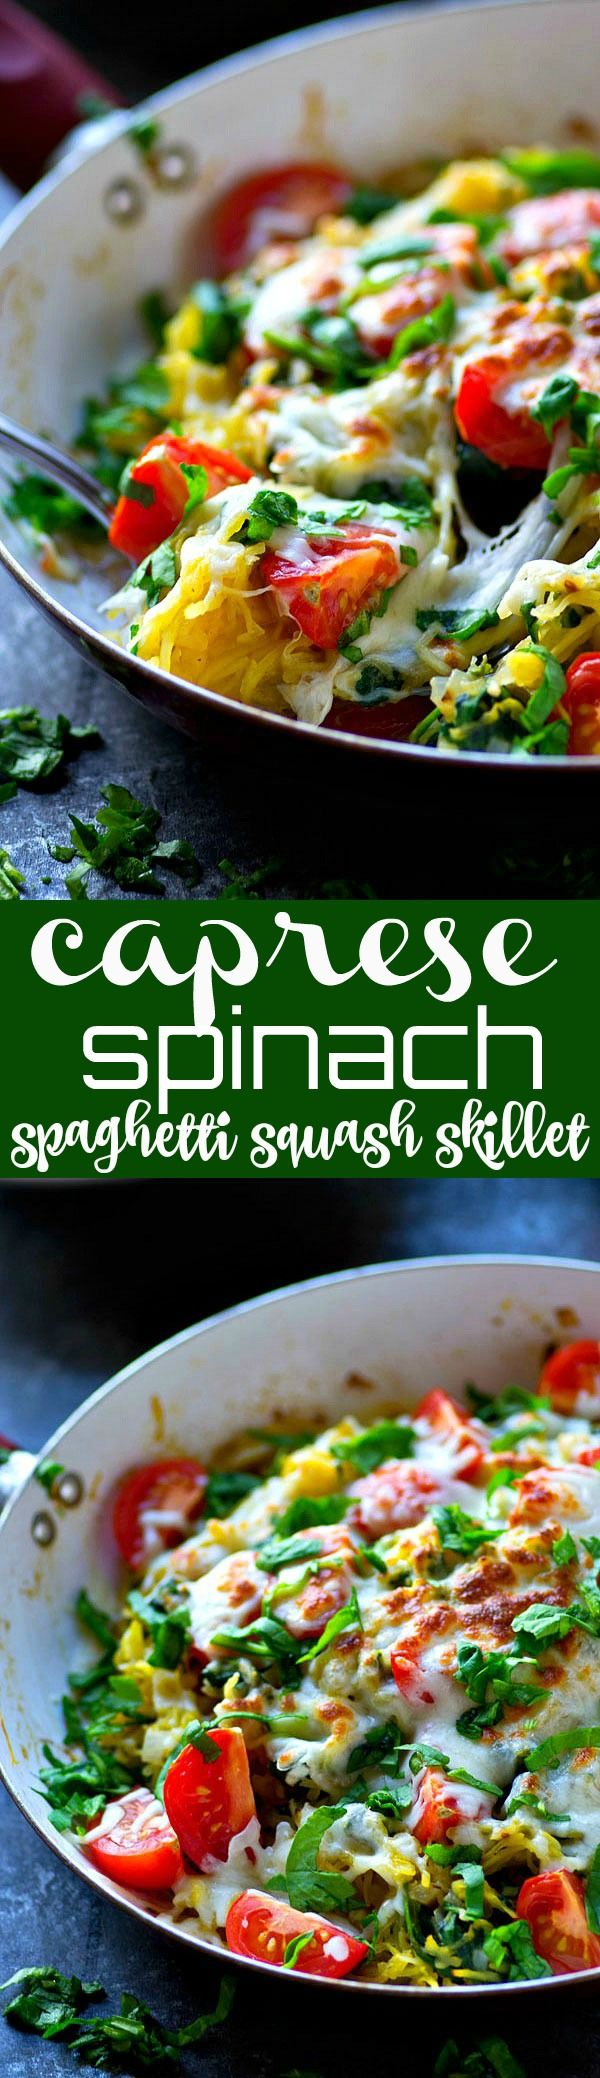 Everything you love about caprese is packed into this SUPER flavorful and easy-to-throw-together spaghetti squash skillet! You won't even miss the regular noodles.